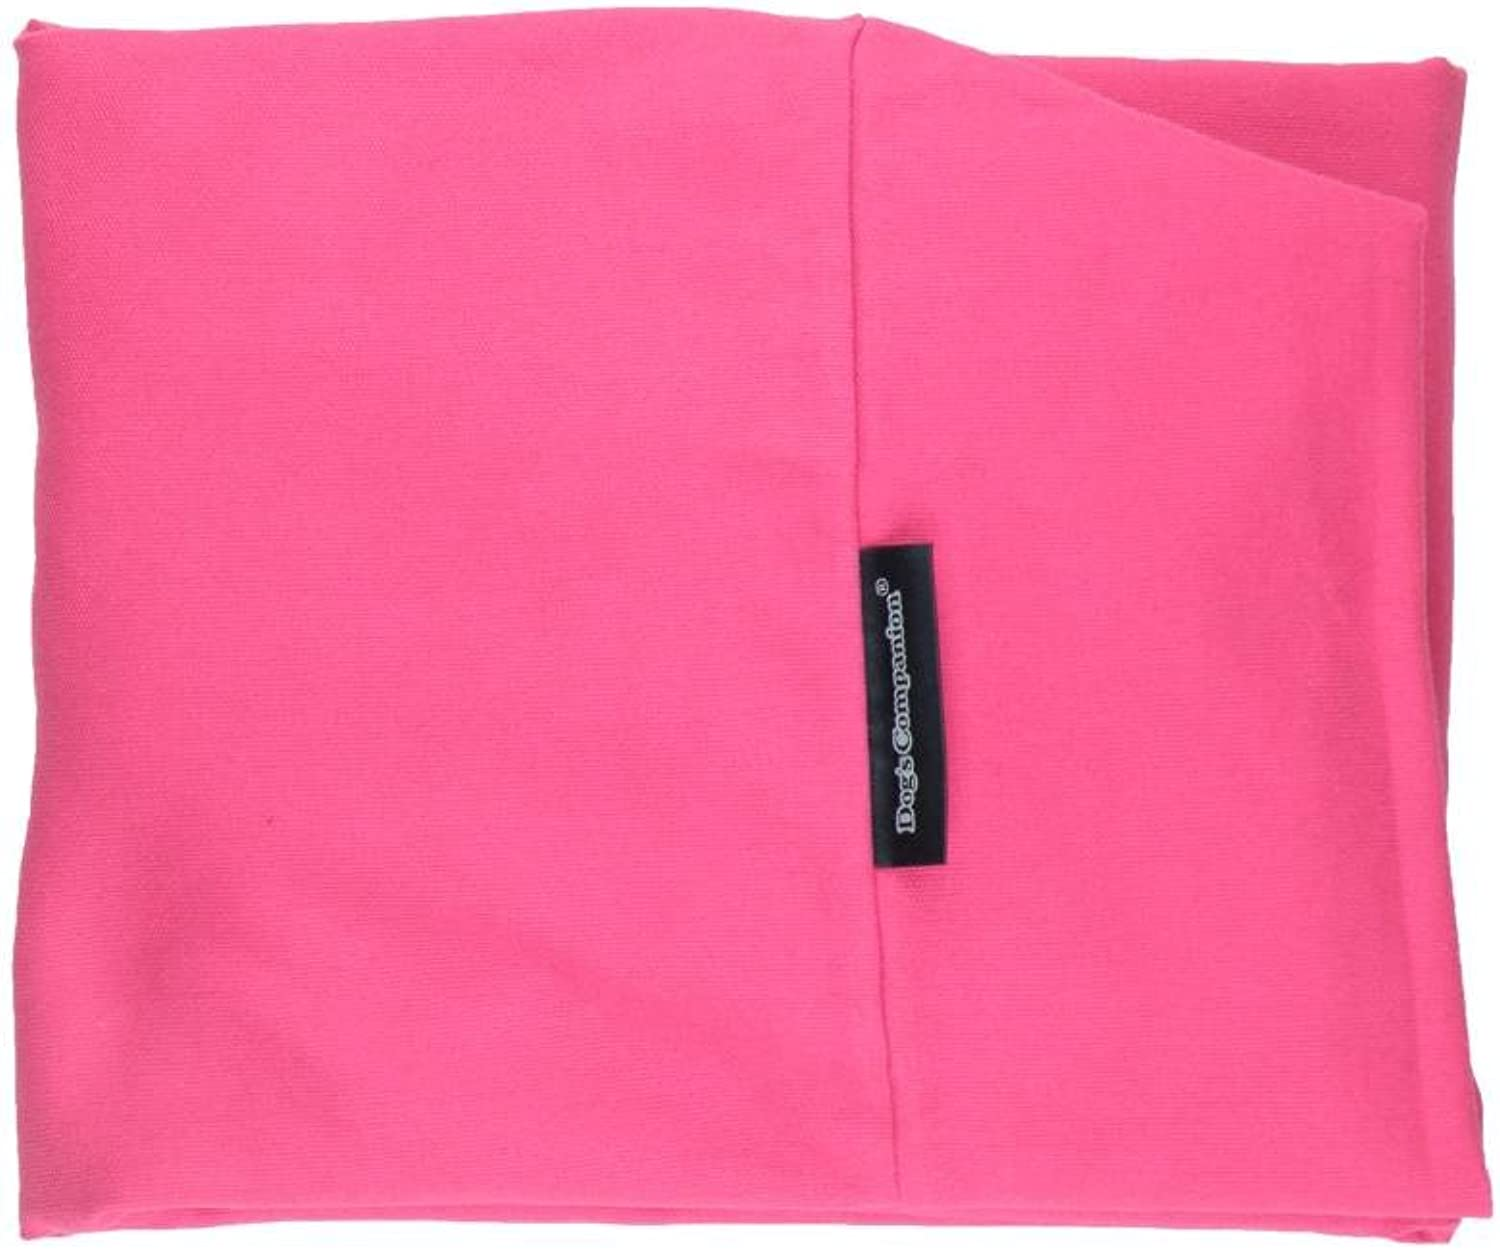 Dog's Companion Canvas Cover Dog Bed Large Pink